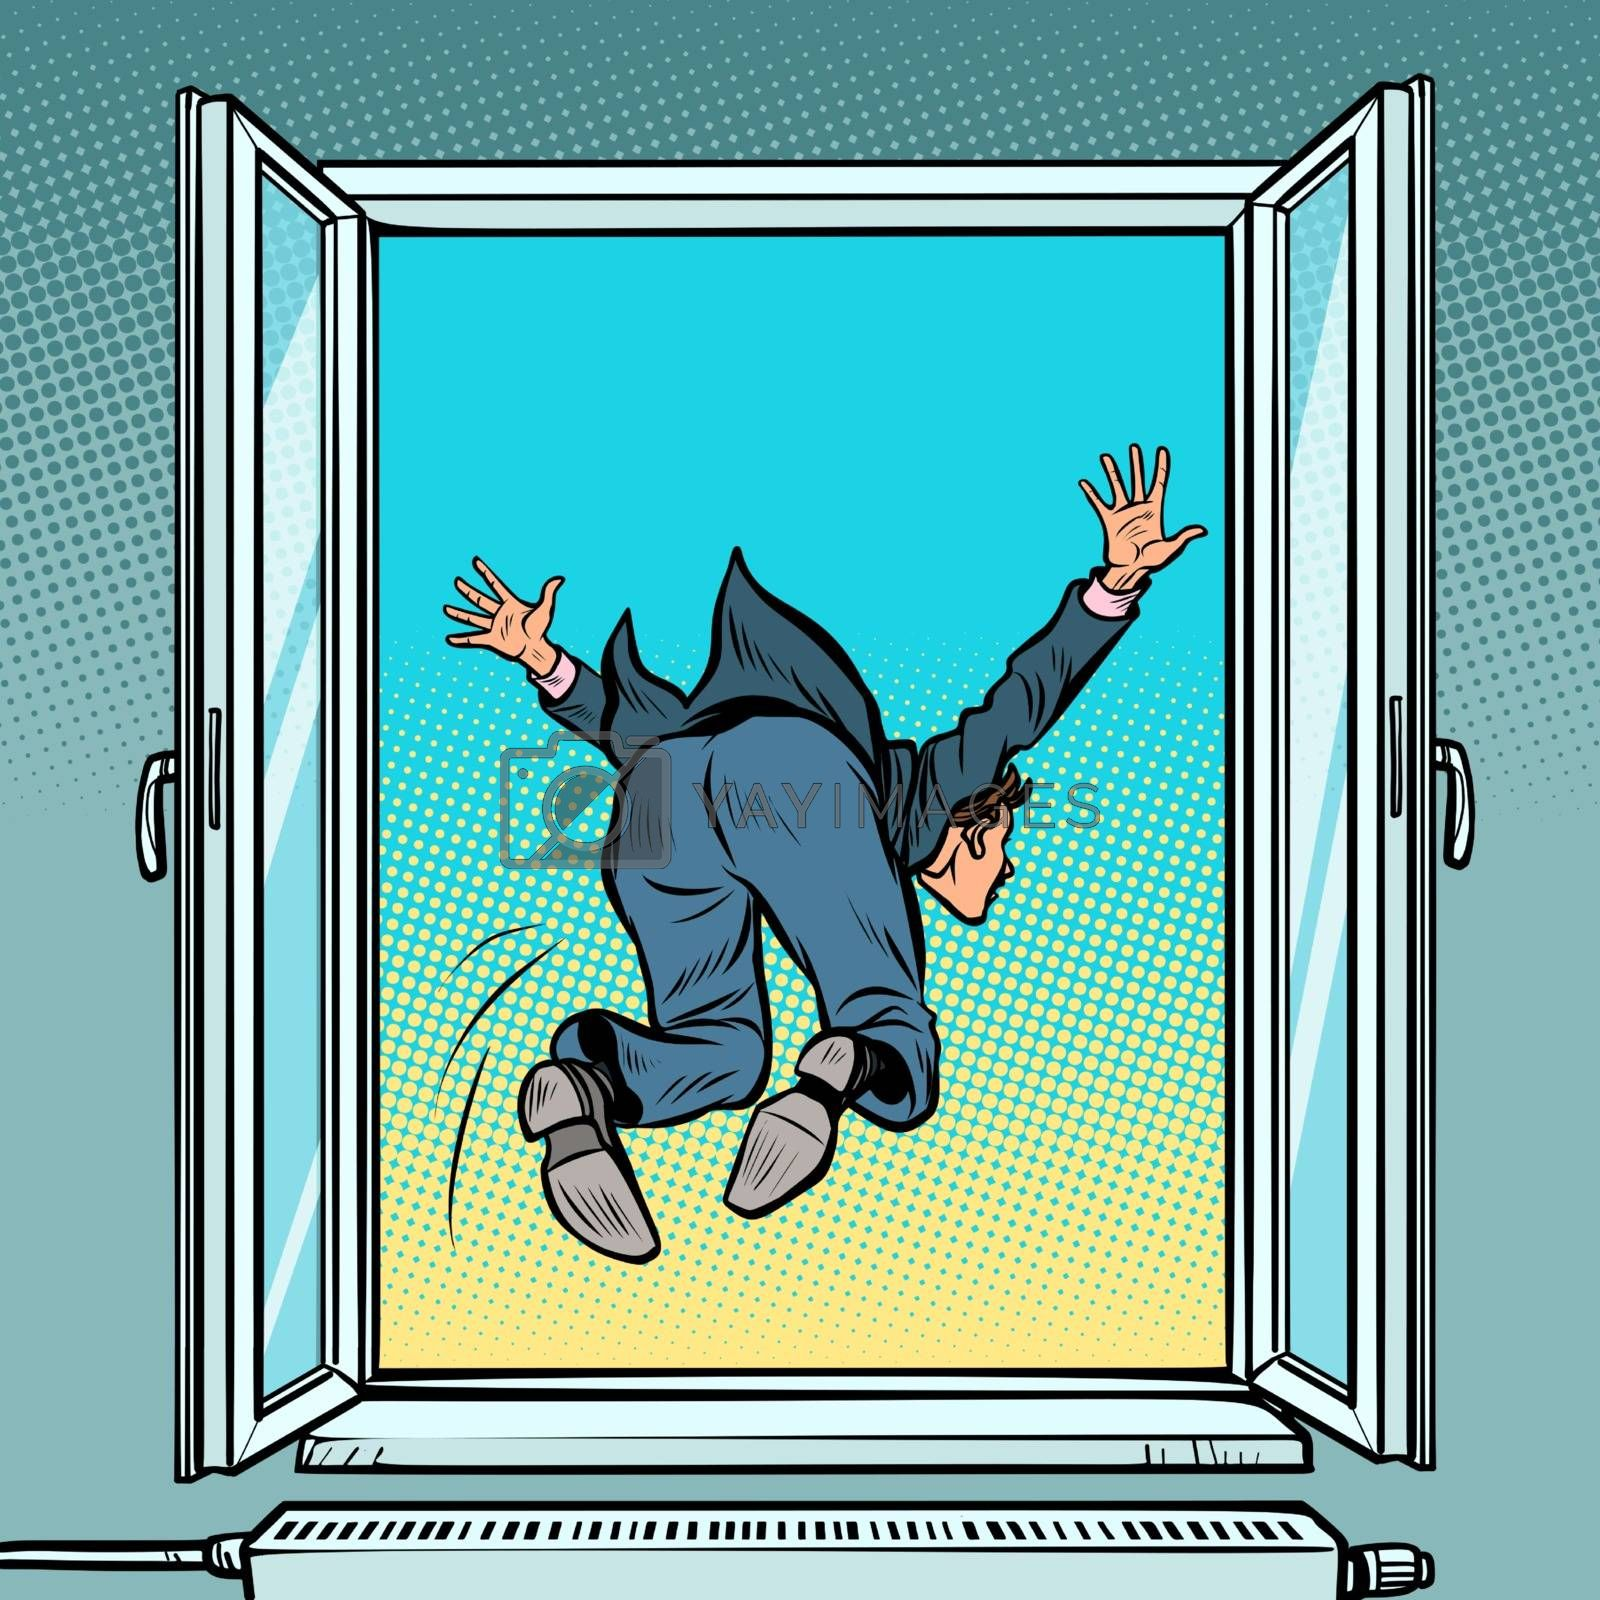 Bankruptcy and financial crisis. Suicide businessman jumps out the window by rogistok